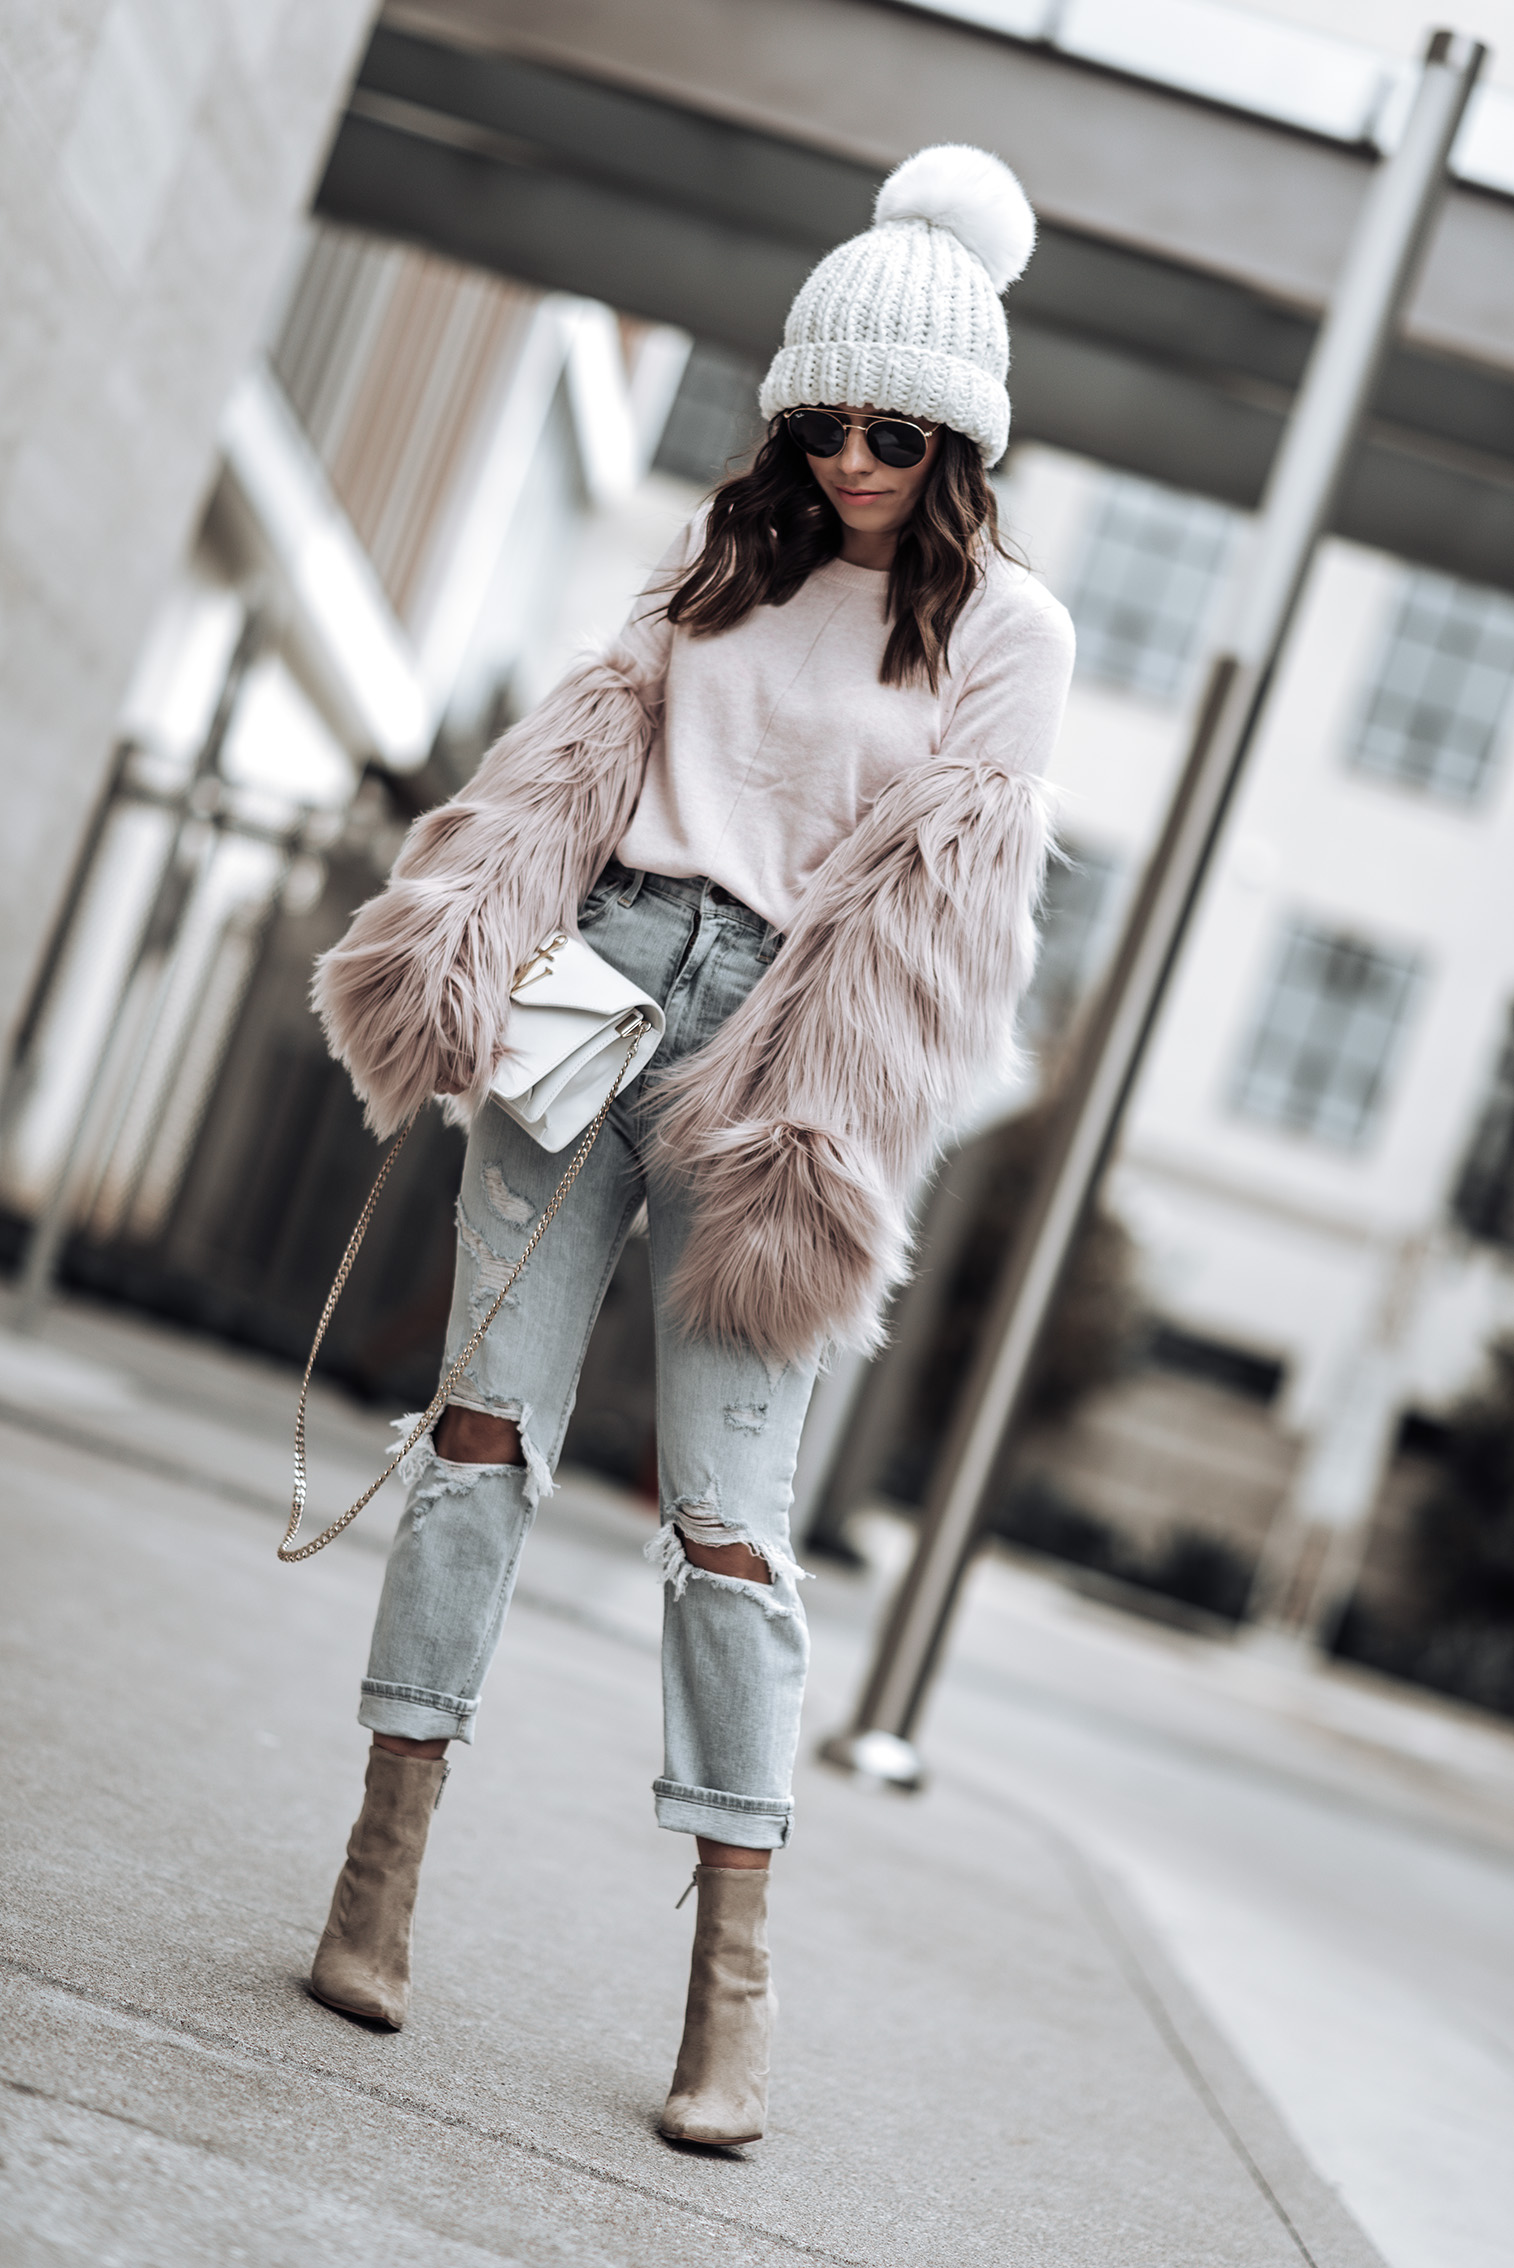 monochrome style | High Rise Ankle Strait Jeans | Italian Super Soft Classic Crew Sweater by Banana Republic {C/O} | Kendall + Kylie Fallyn Bootie | Unreal Fur Dream Jacket | J.W. Anderson Logo Bag| Sunglasses